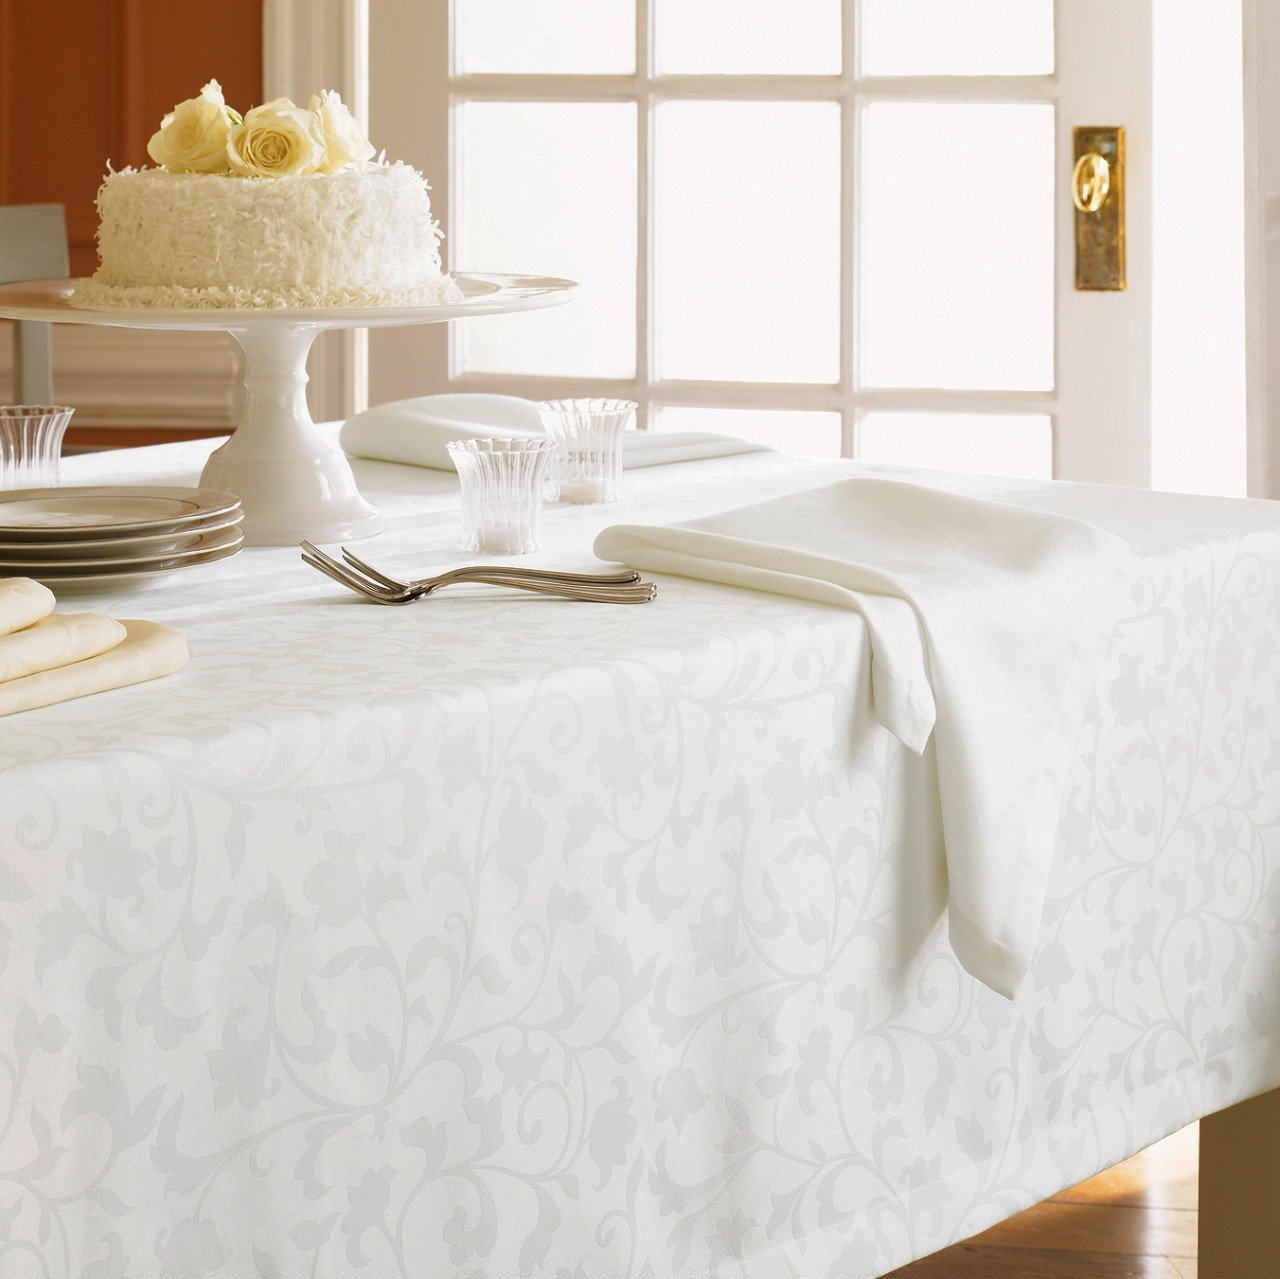 Marvelous Amazon.com: Orchard By Sferra   Square Tablecloth 70x70 (Ivory): Home U0026  Kitchen